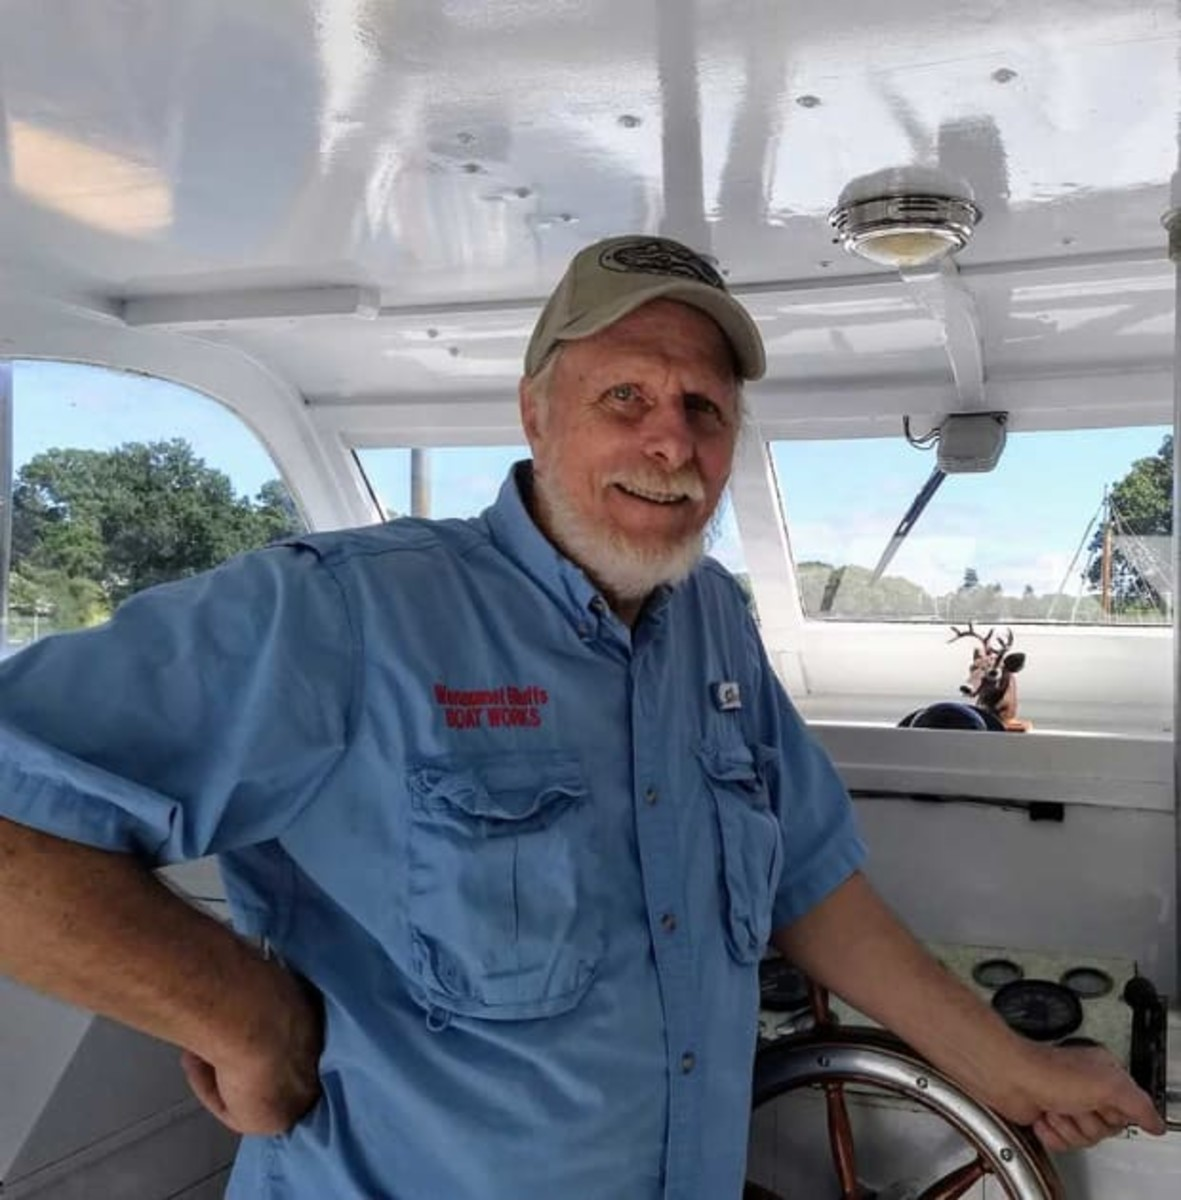 Arch enjoys working on his classic boat, which can handle varying sea conditions with ease.